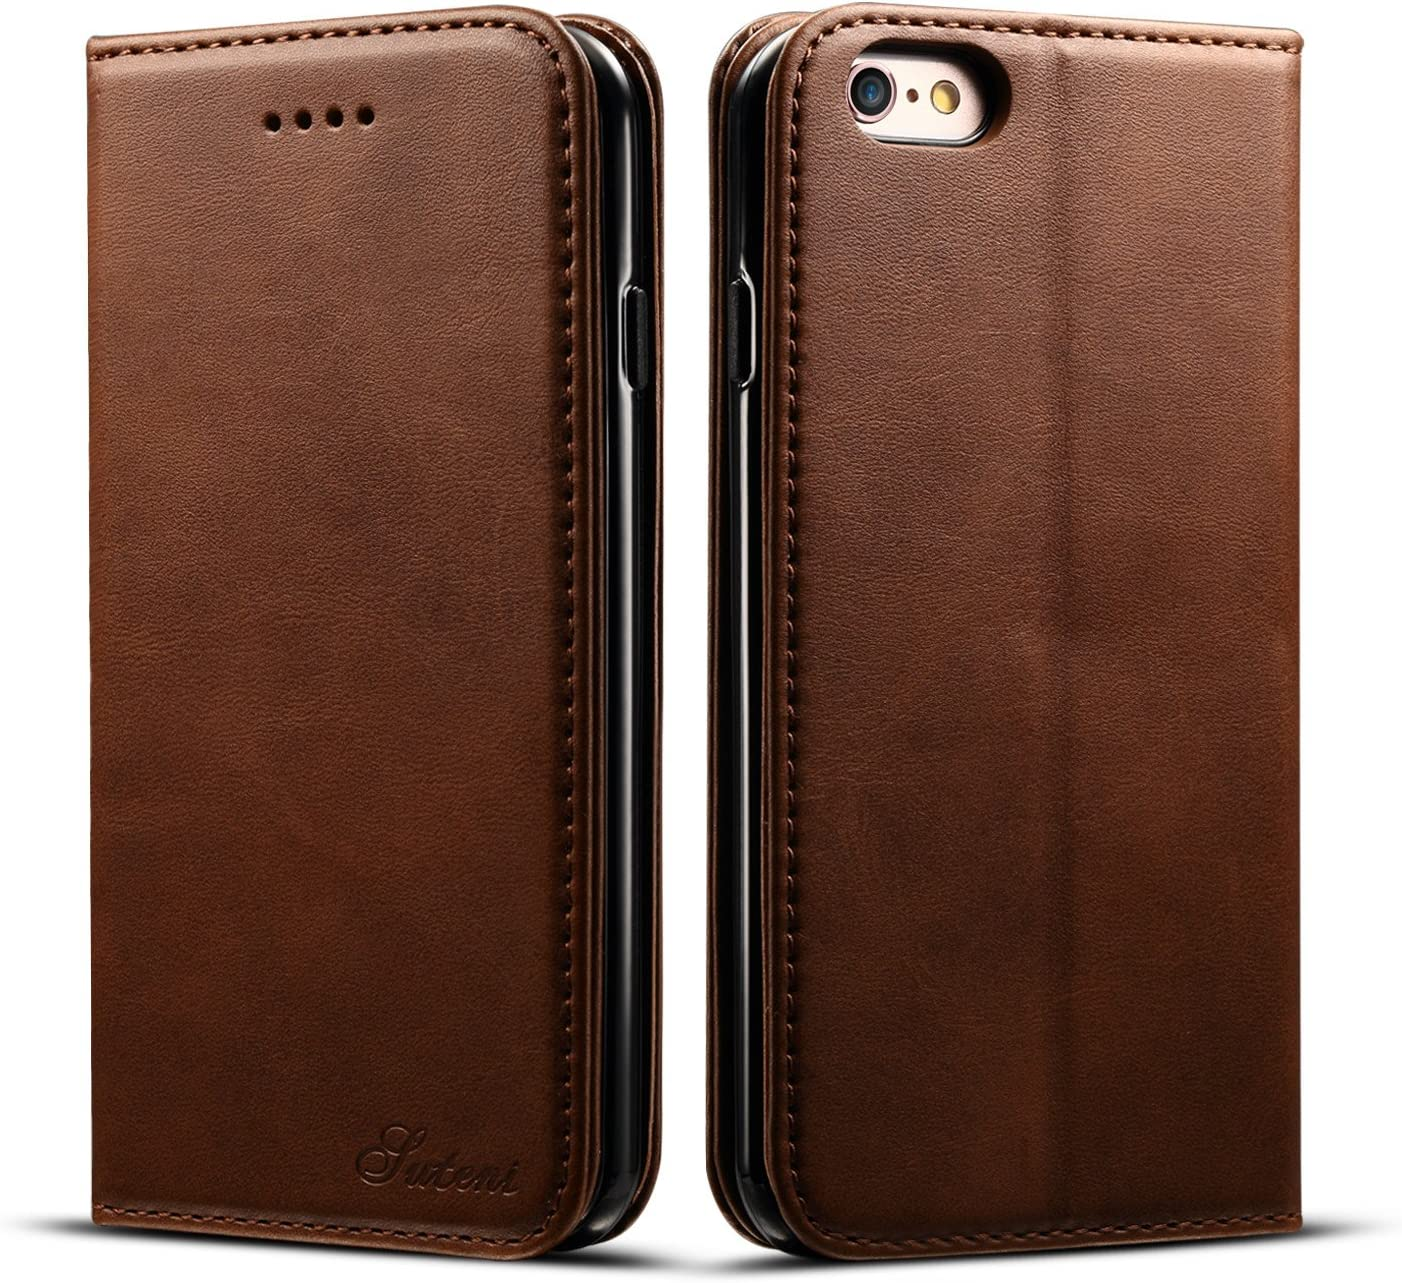 iPhone 6 Case Wallet, iPhone 6s Case Wallet, DINGXIN Premium PU Leather Flip Folio Book Case Cover with Card Holder Magnetic Stand for iPhone 6 / 6s (Brown, iPhone6/6s, 4.7inch)